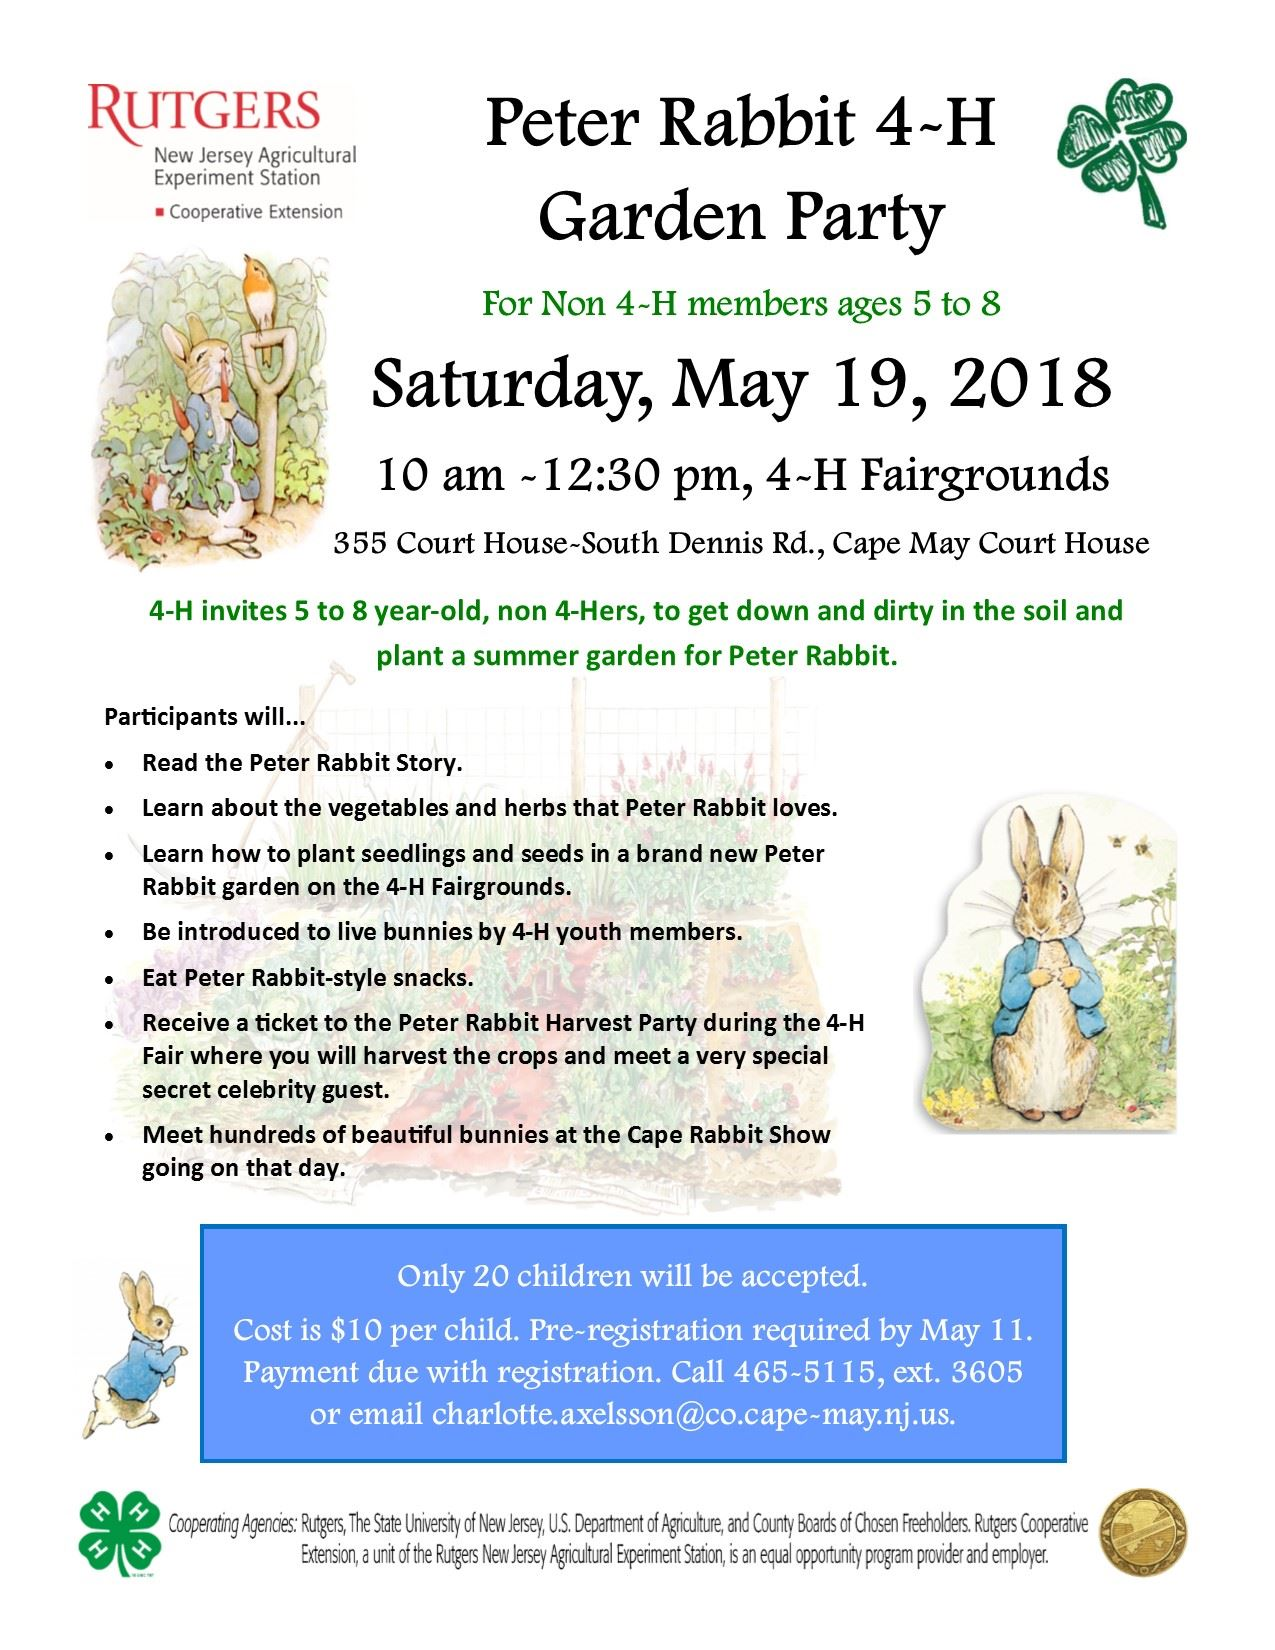 Peter Rabbit Gardening Program flyer